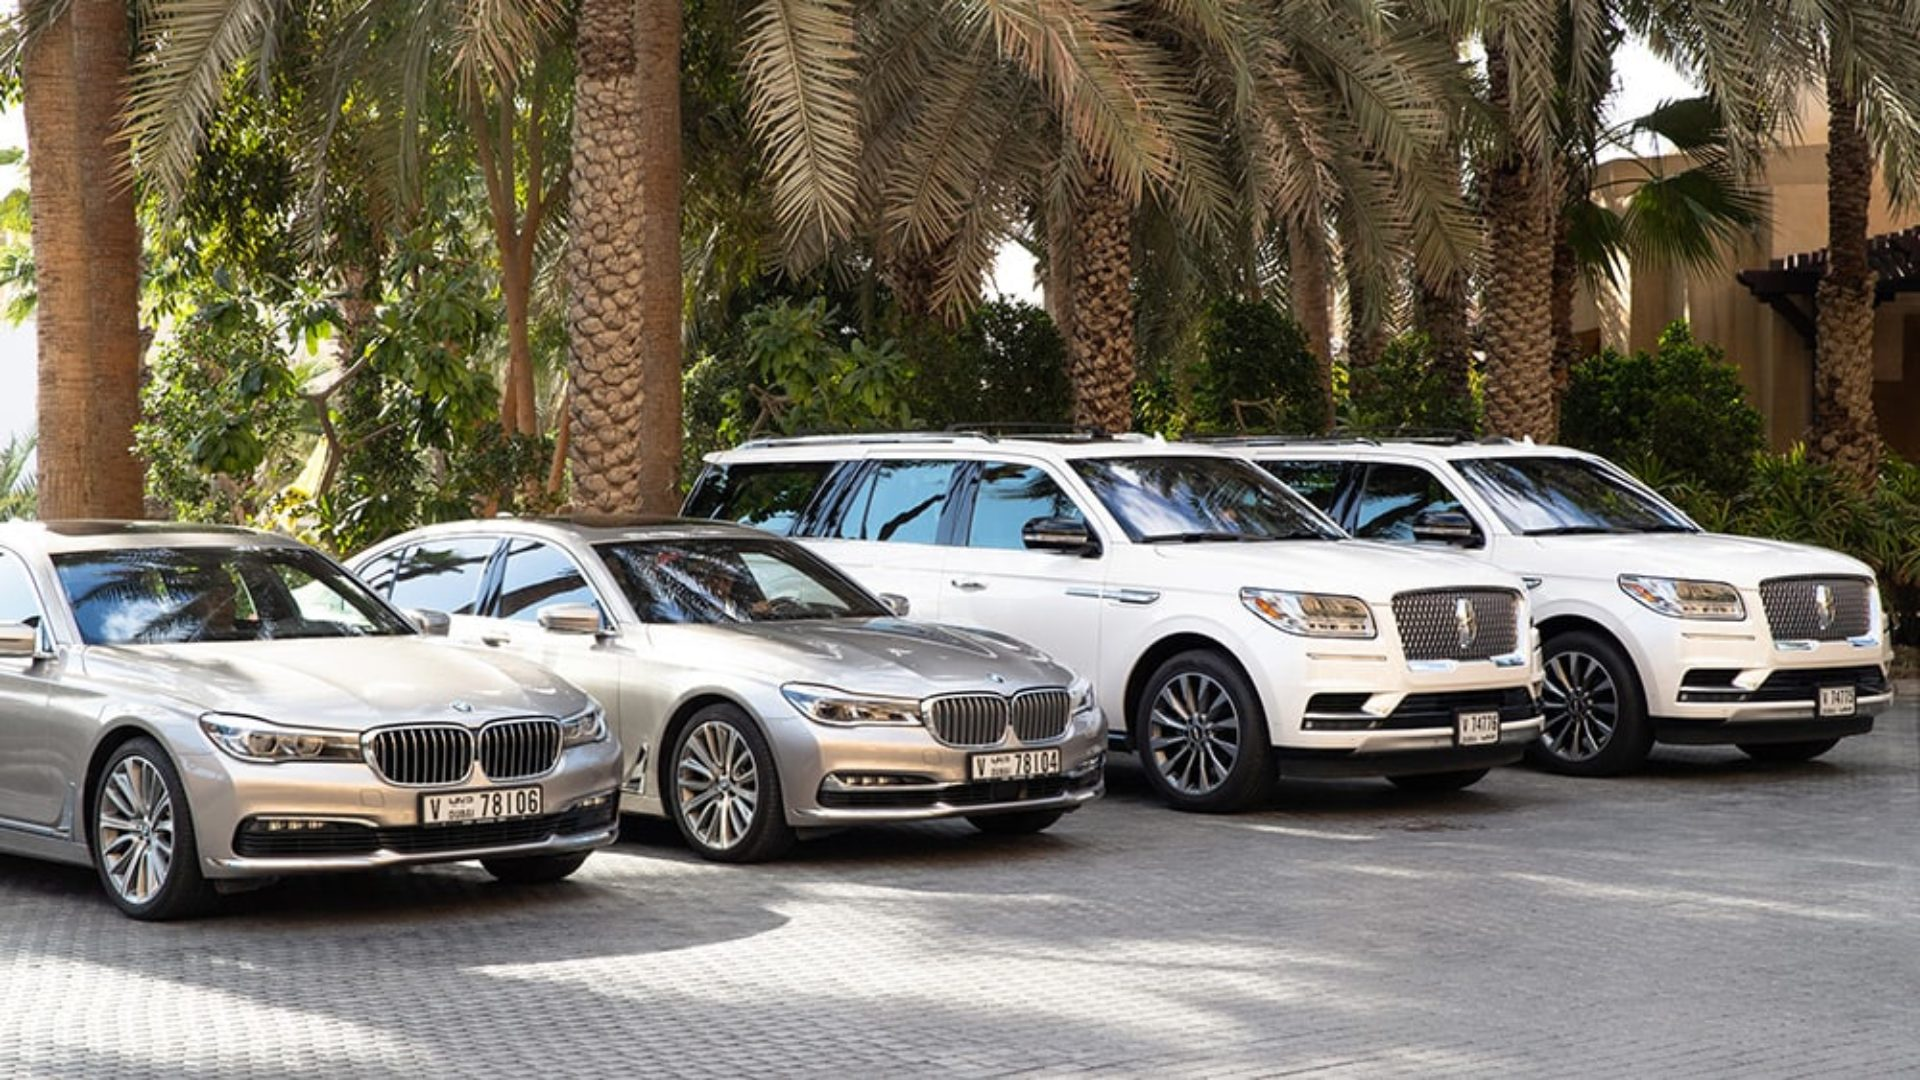 Luxury vehicle fleet at Jumeirah Mina A'Salam